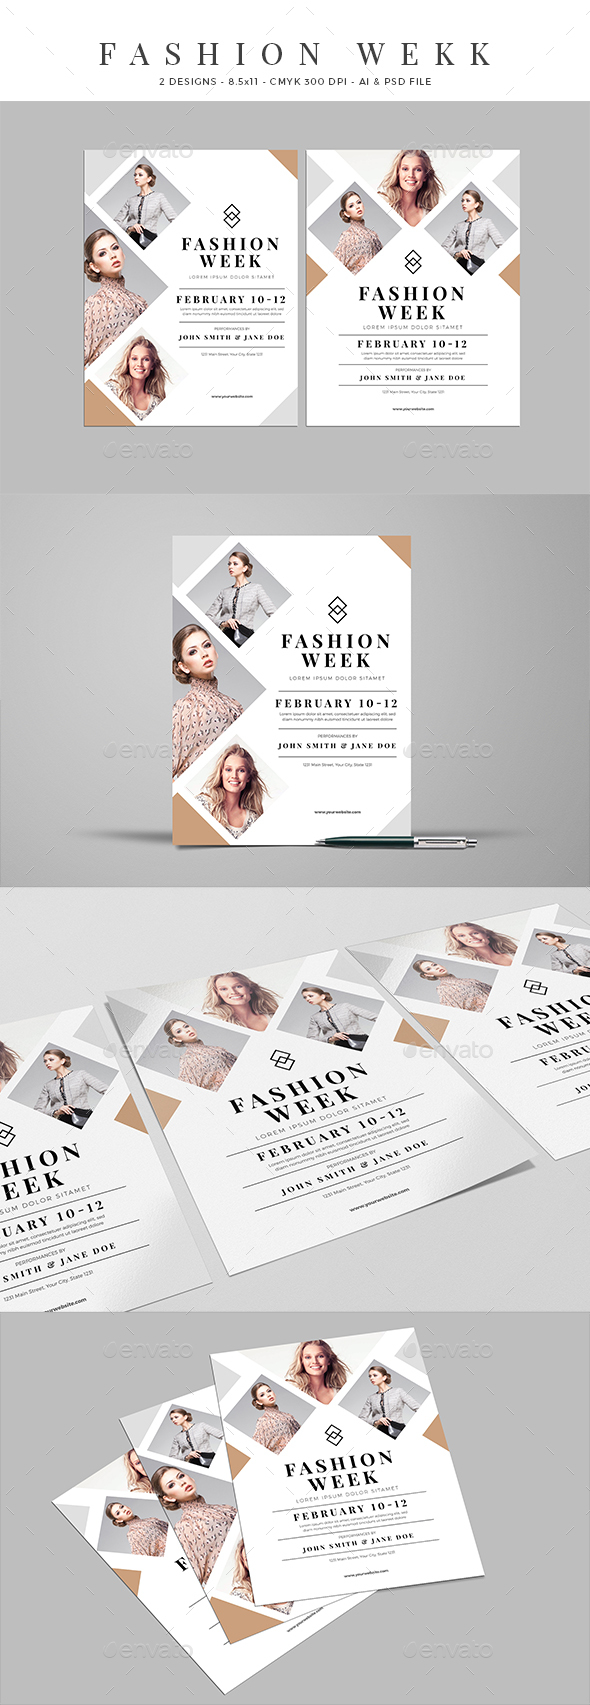 Clean Fashion Week Event Flyer - Events Flyers